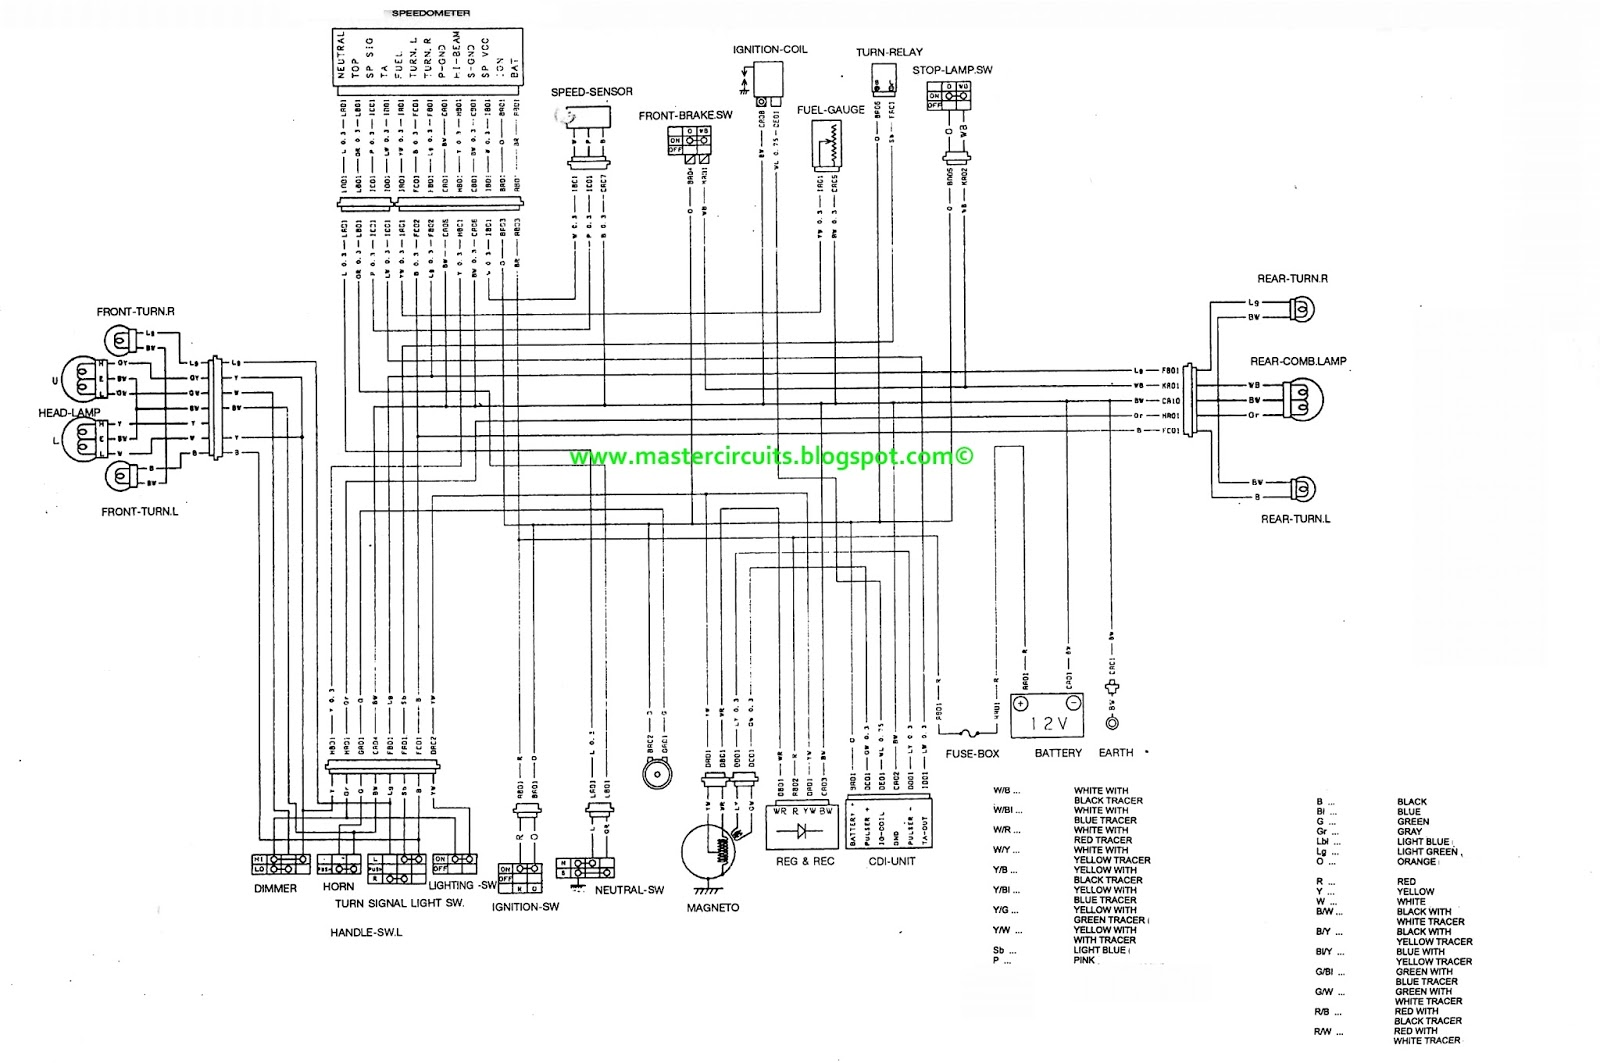 Raider R150 Wiring Diagram | Techy at day, Blogger at noon